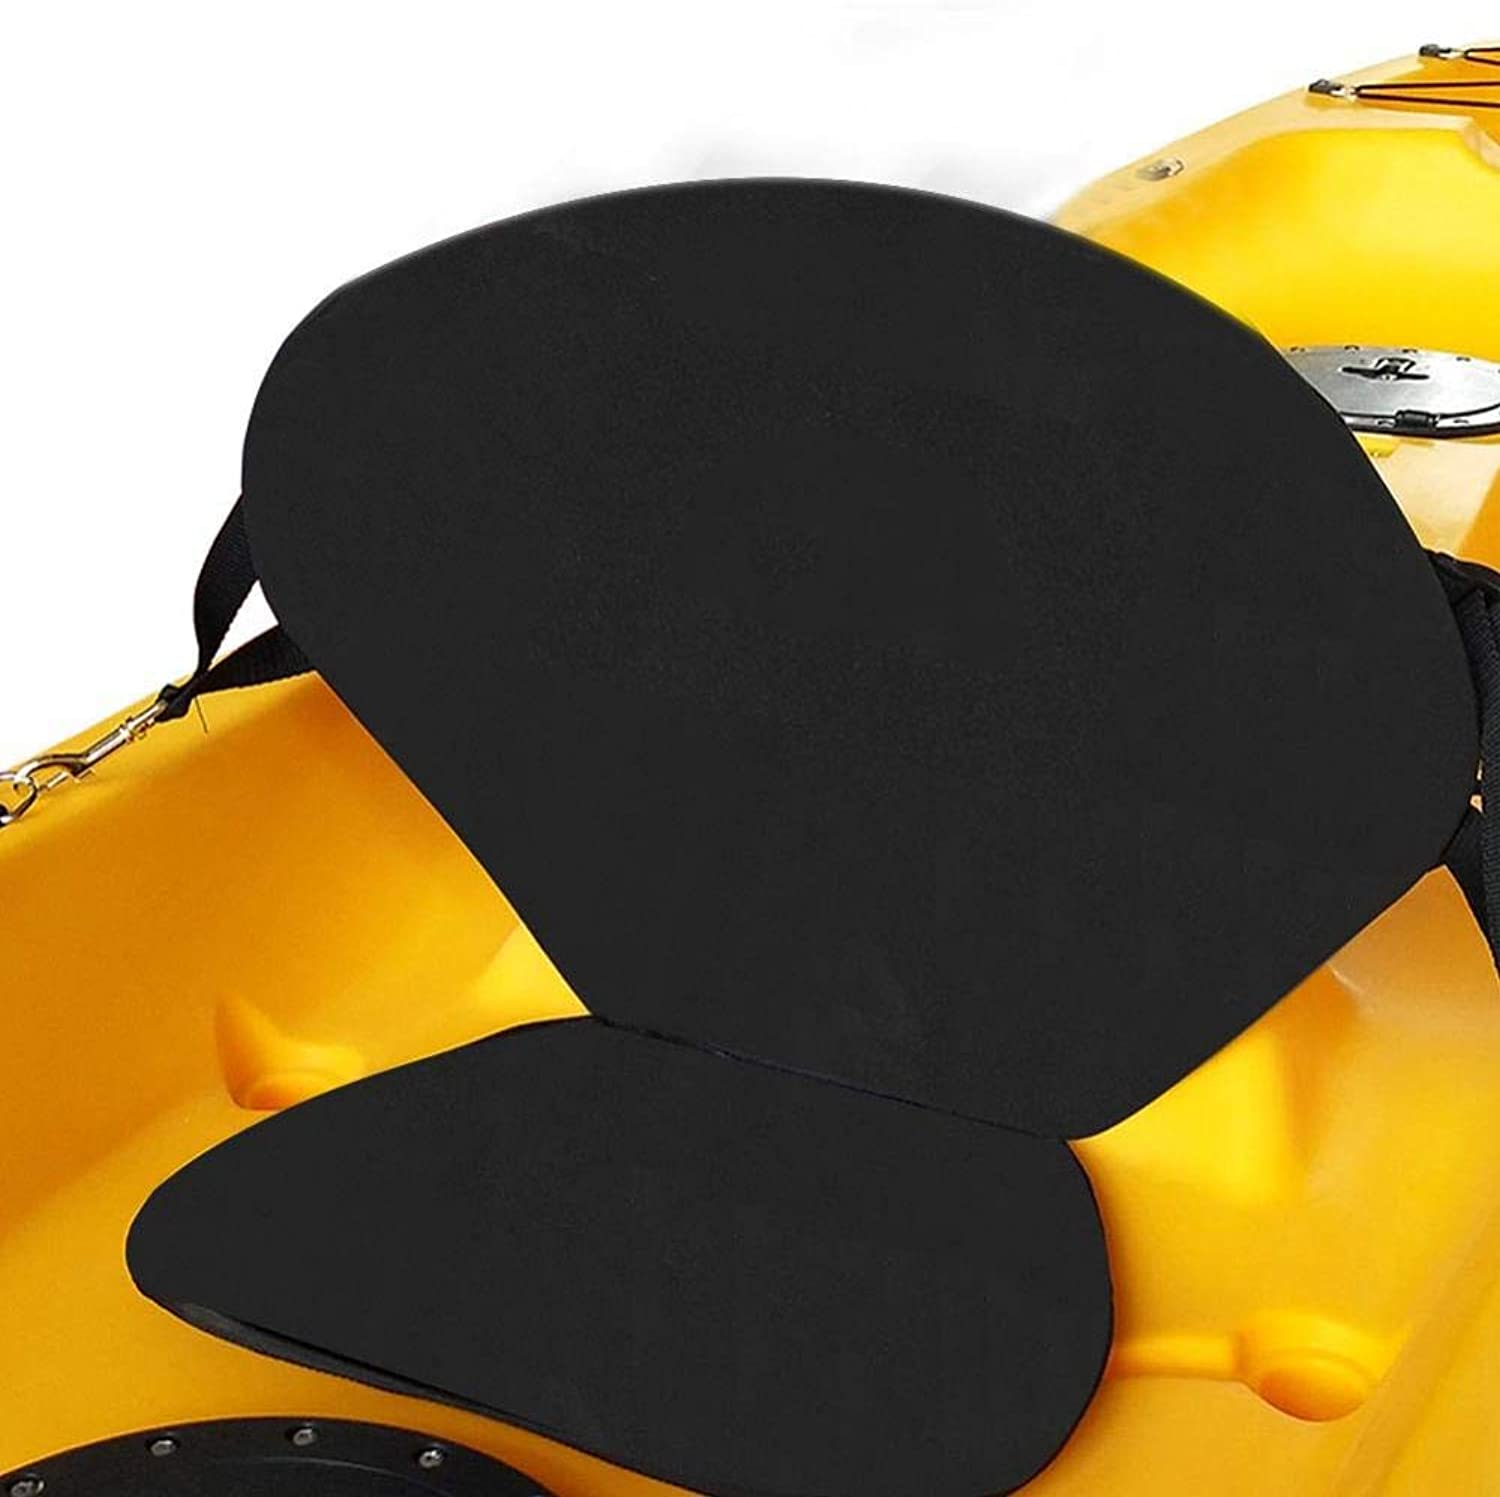 Kayaking Inflatable Boat Adjustable Sit on Top Seat Cushion Pad Back Rest Seat Chair Kayak Backrest for Stand Up Paddle Board Canoe Fishing, Boat Rafting